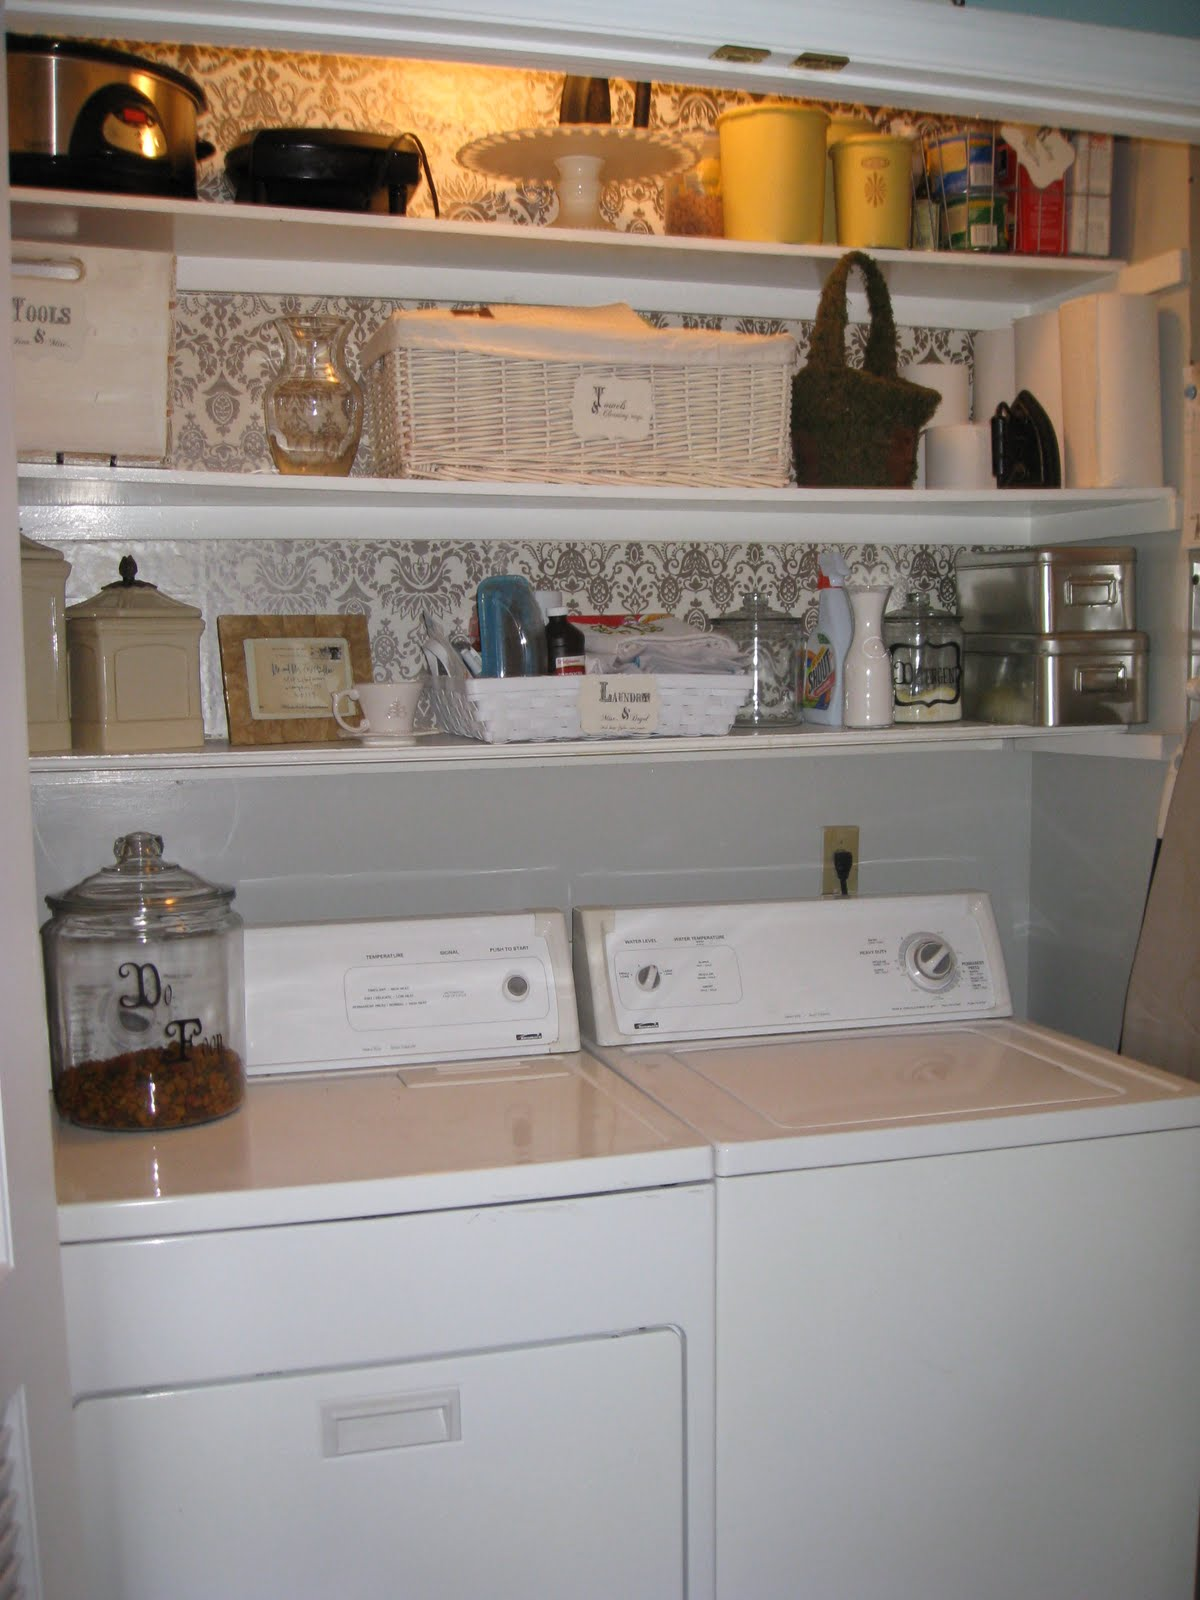 Remodelaholic | Laundry Room Design and Decorating Idea on Laundry Decorating Ideas  id=83517